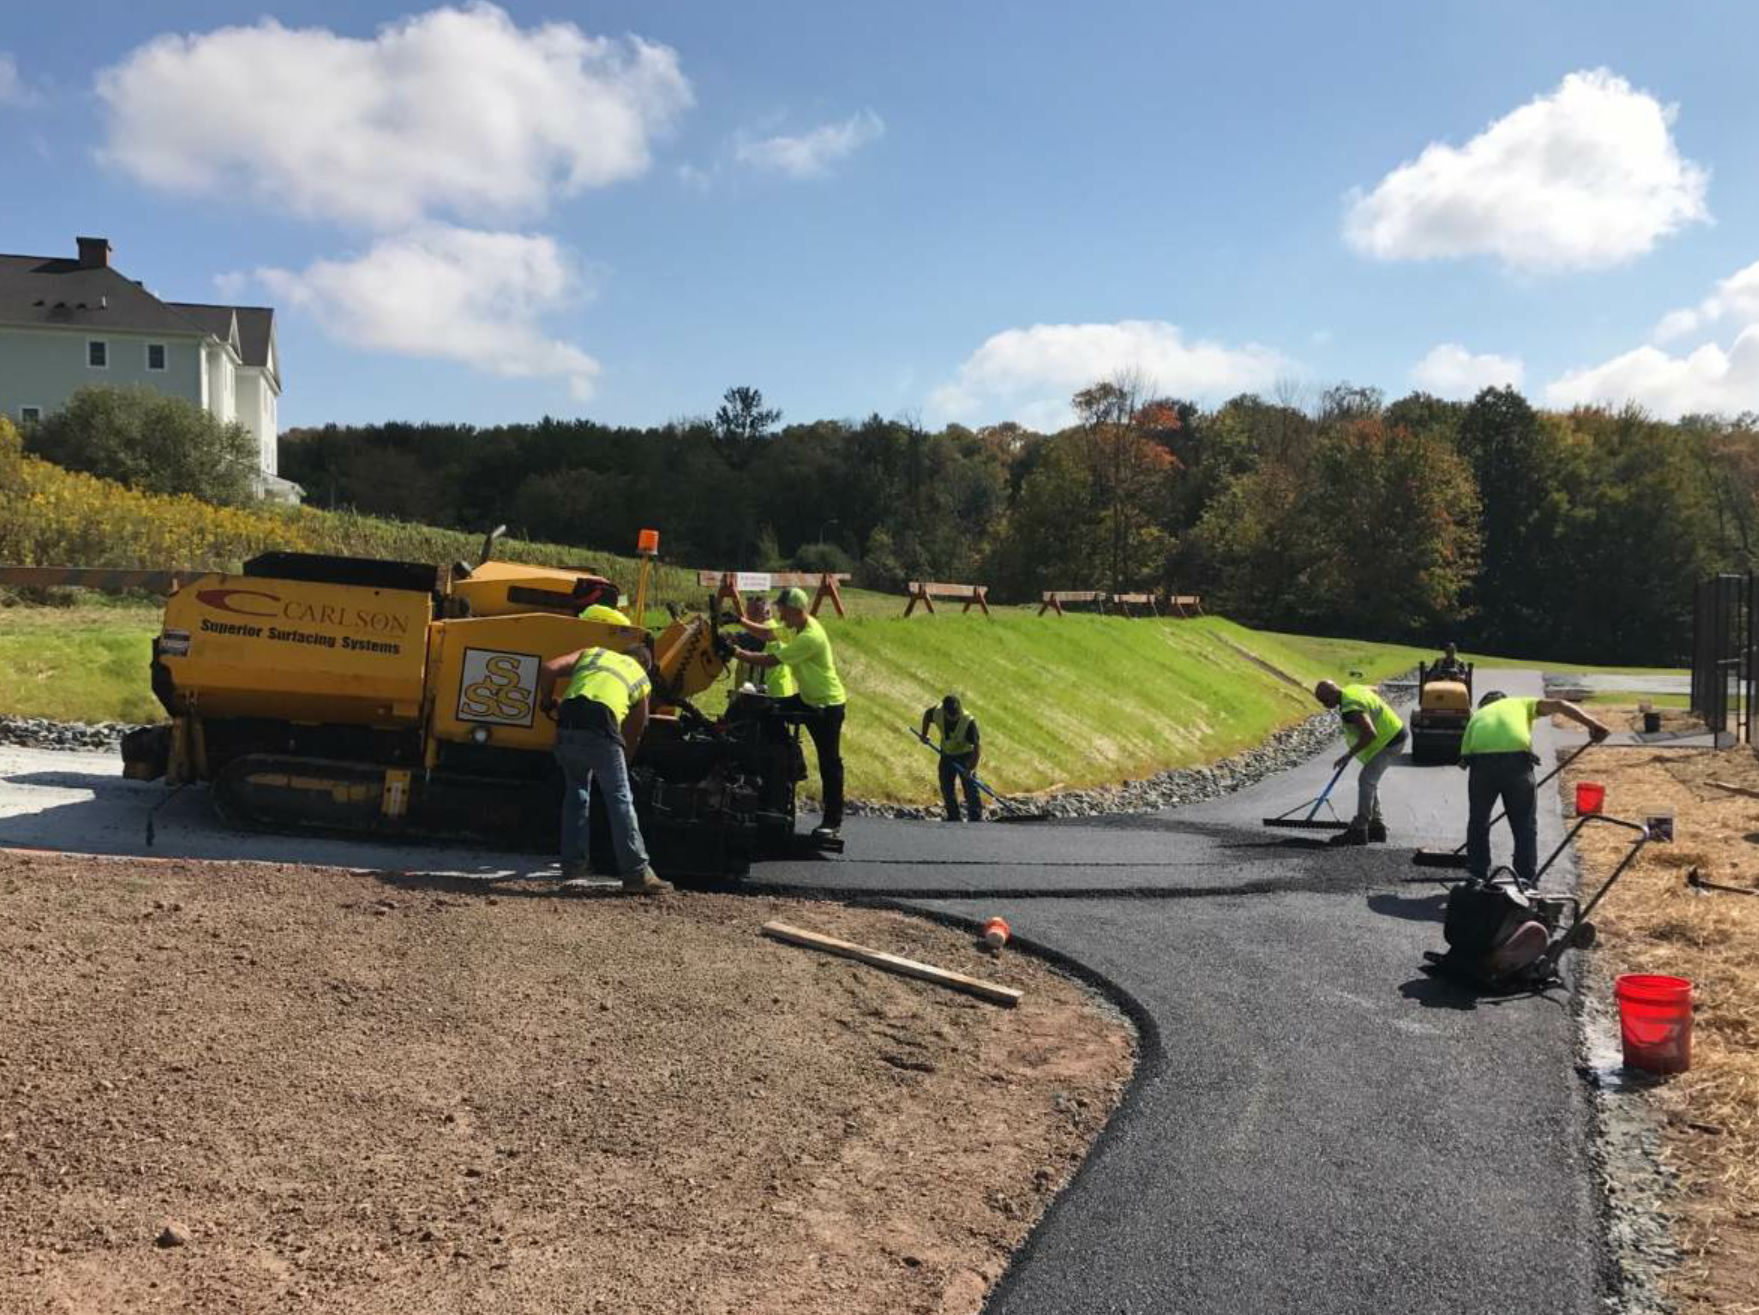 Often, paving courts requires constructing an access road. The project at Sullivan County Community College was no exception.